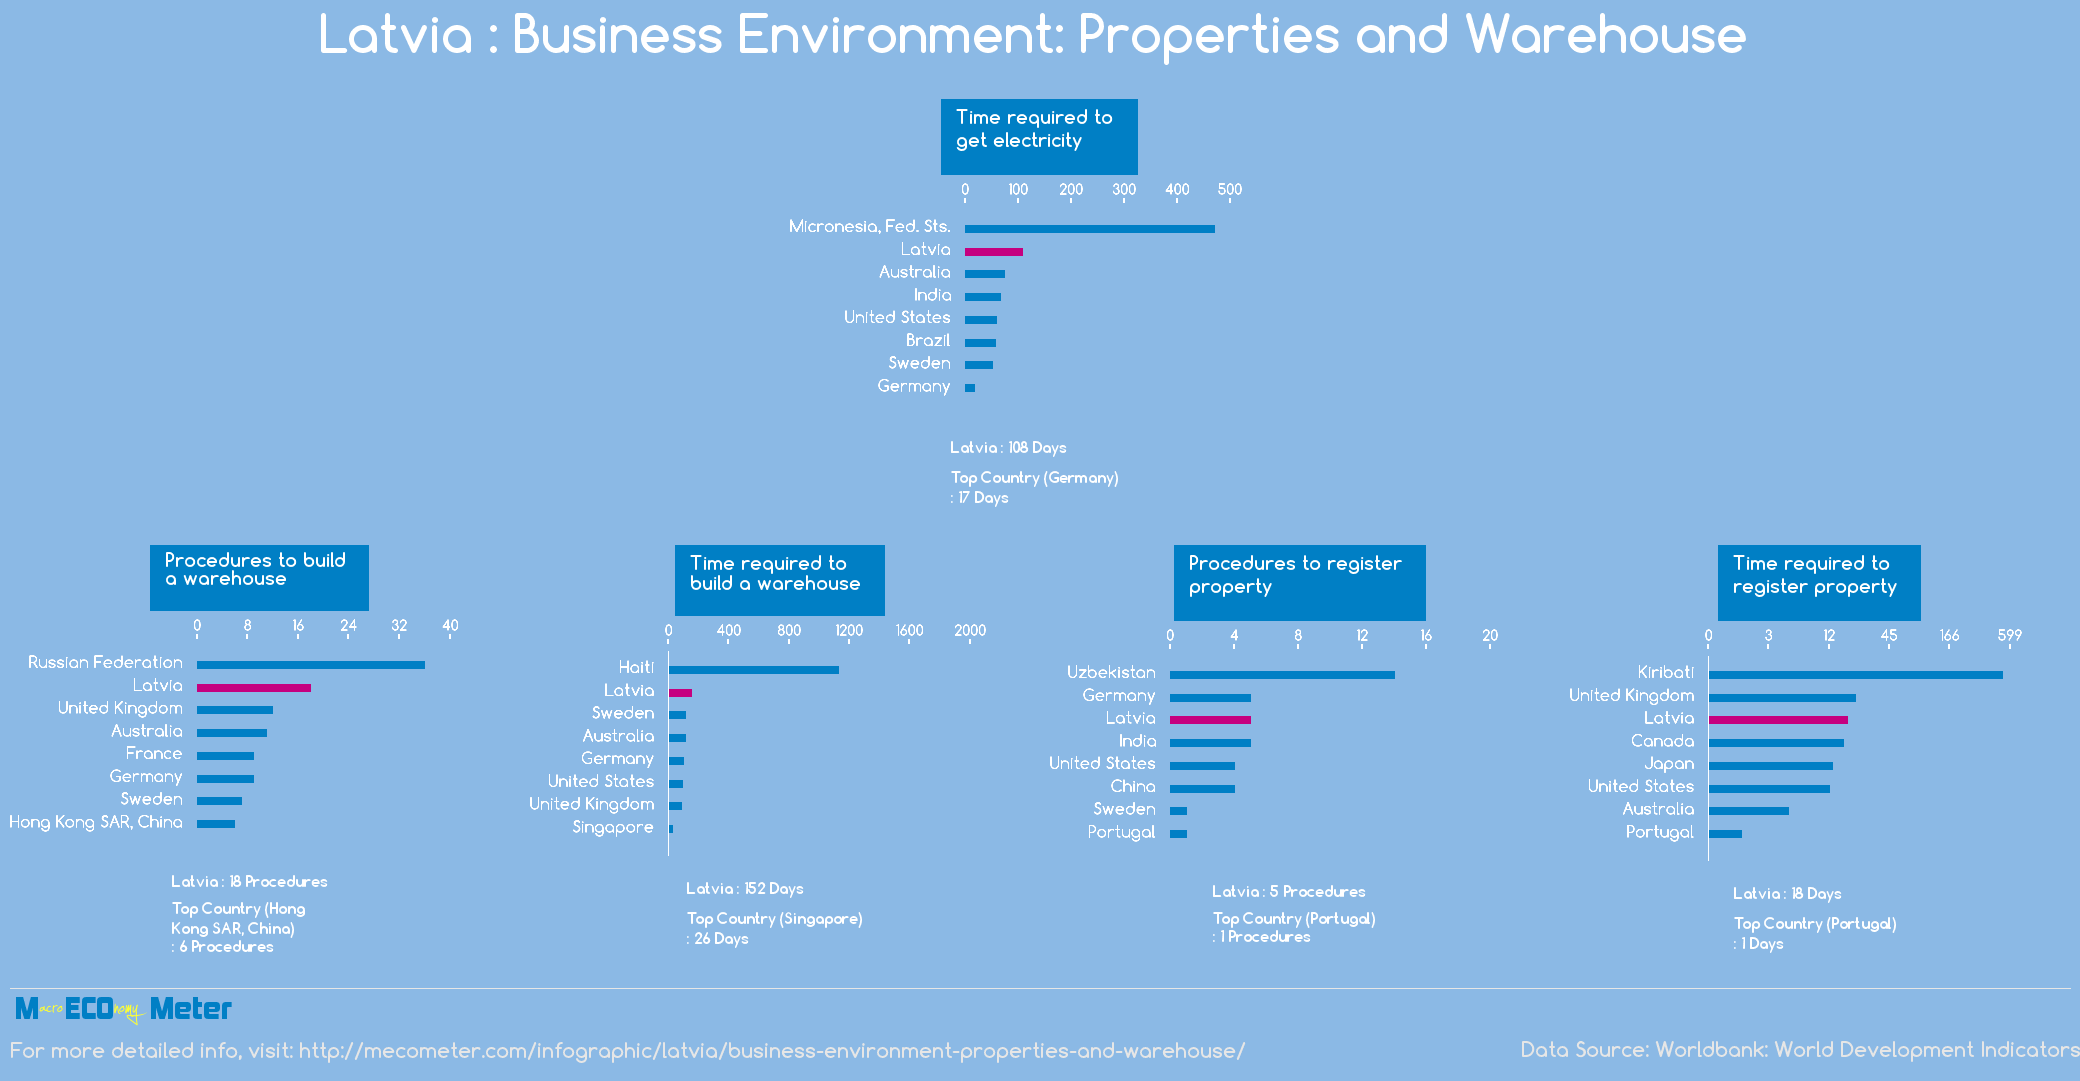 Latvia : Business Environment: Properties and Warehouse